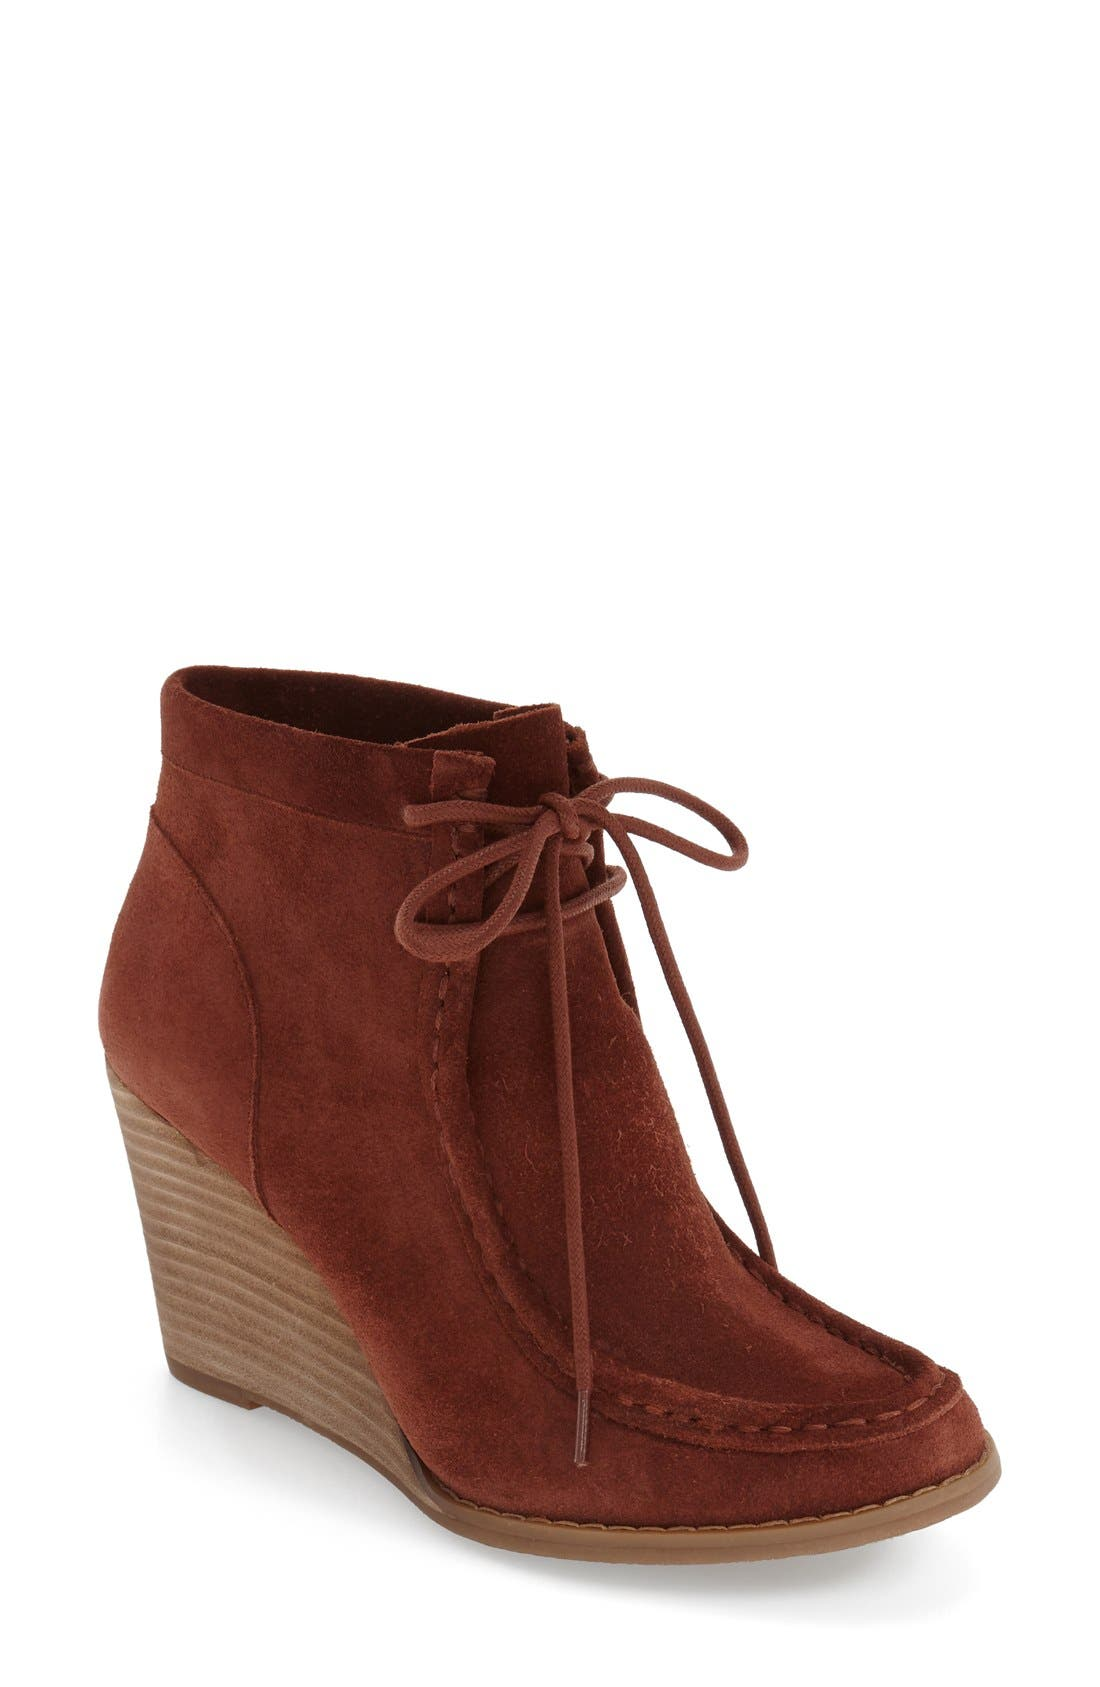 LUCKY BRAND 'Ysabel' Wedge Chukka Boot